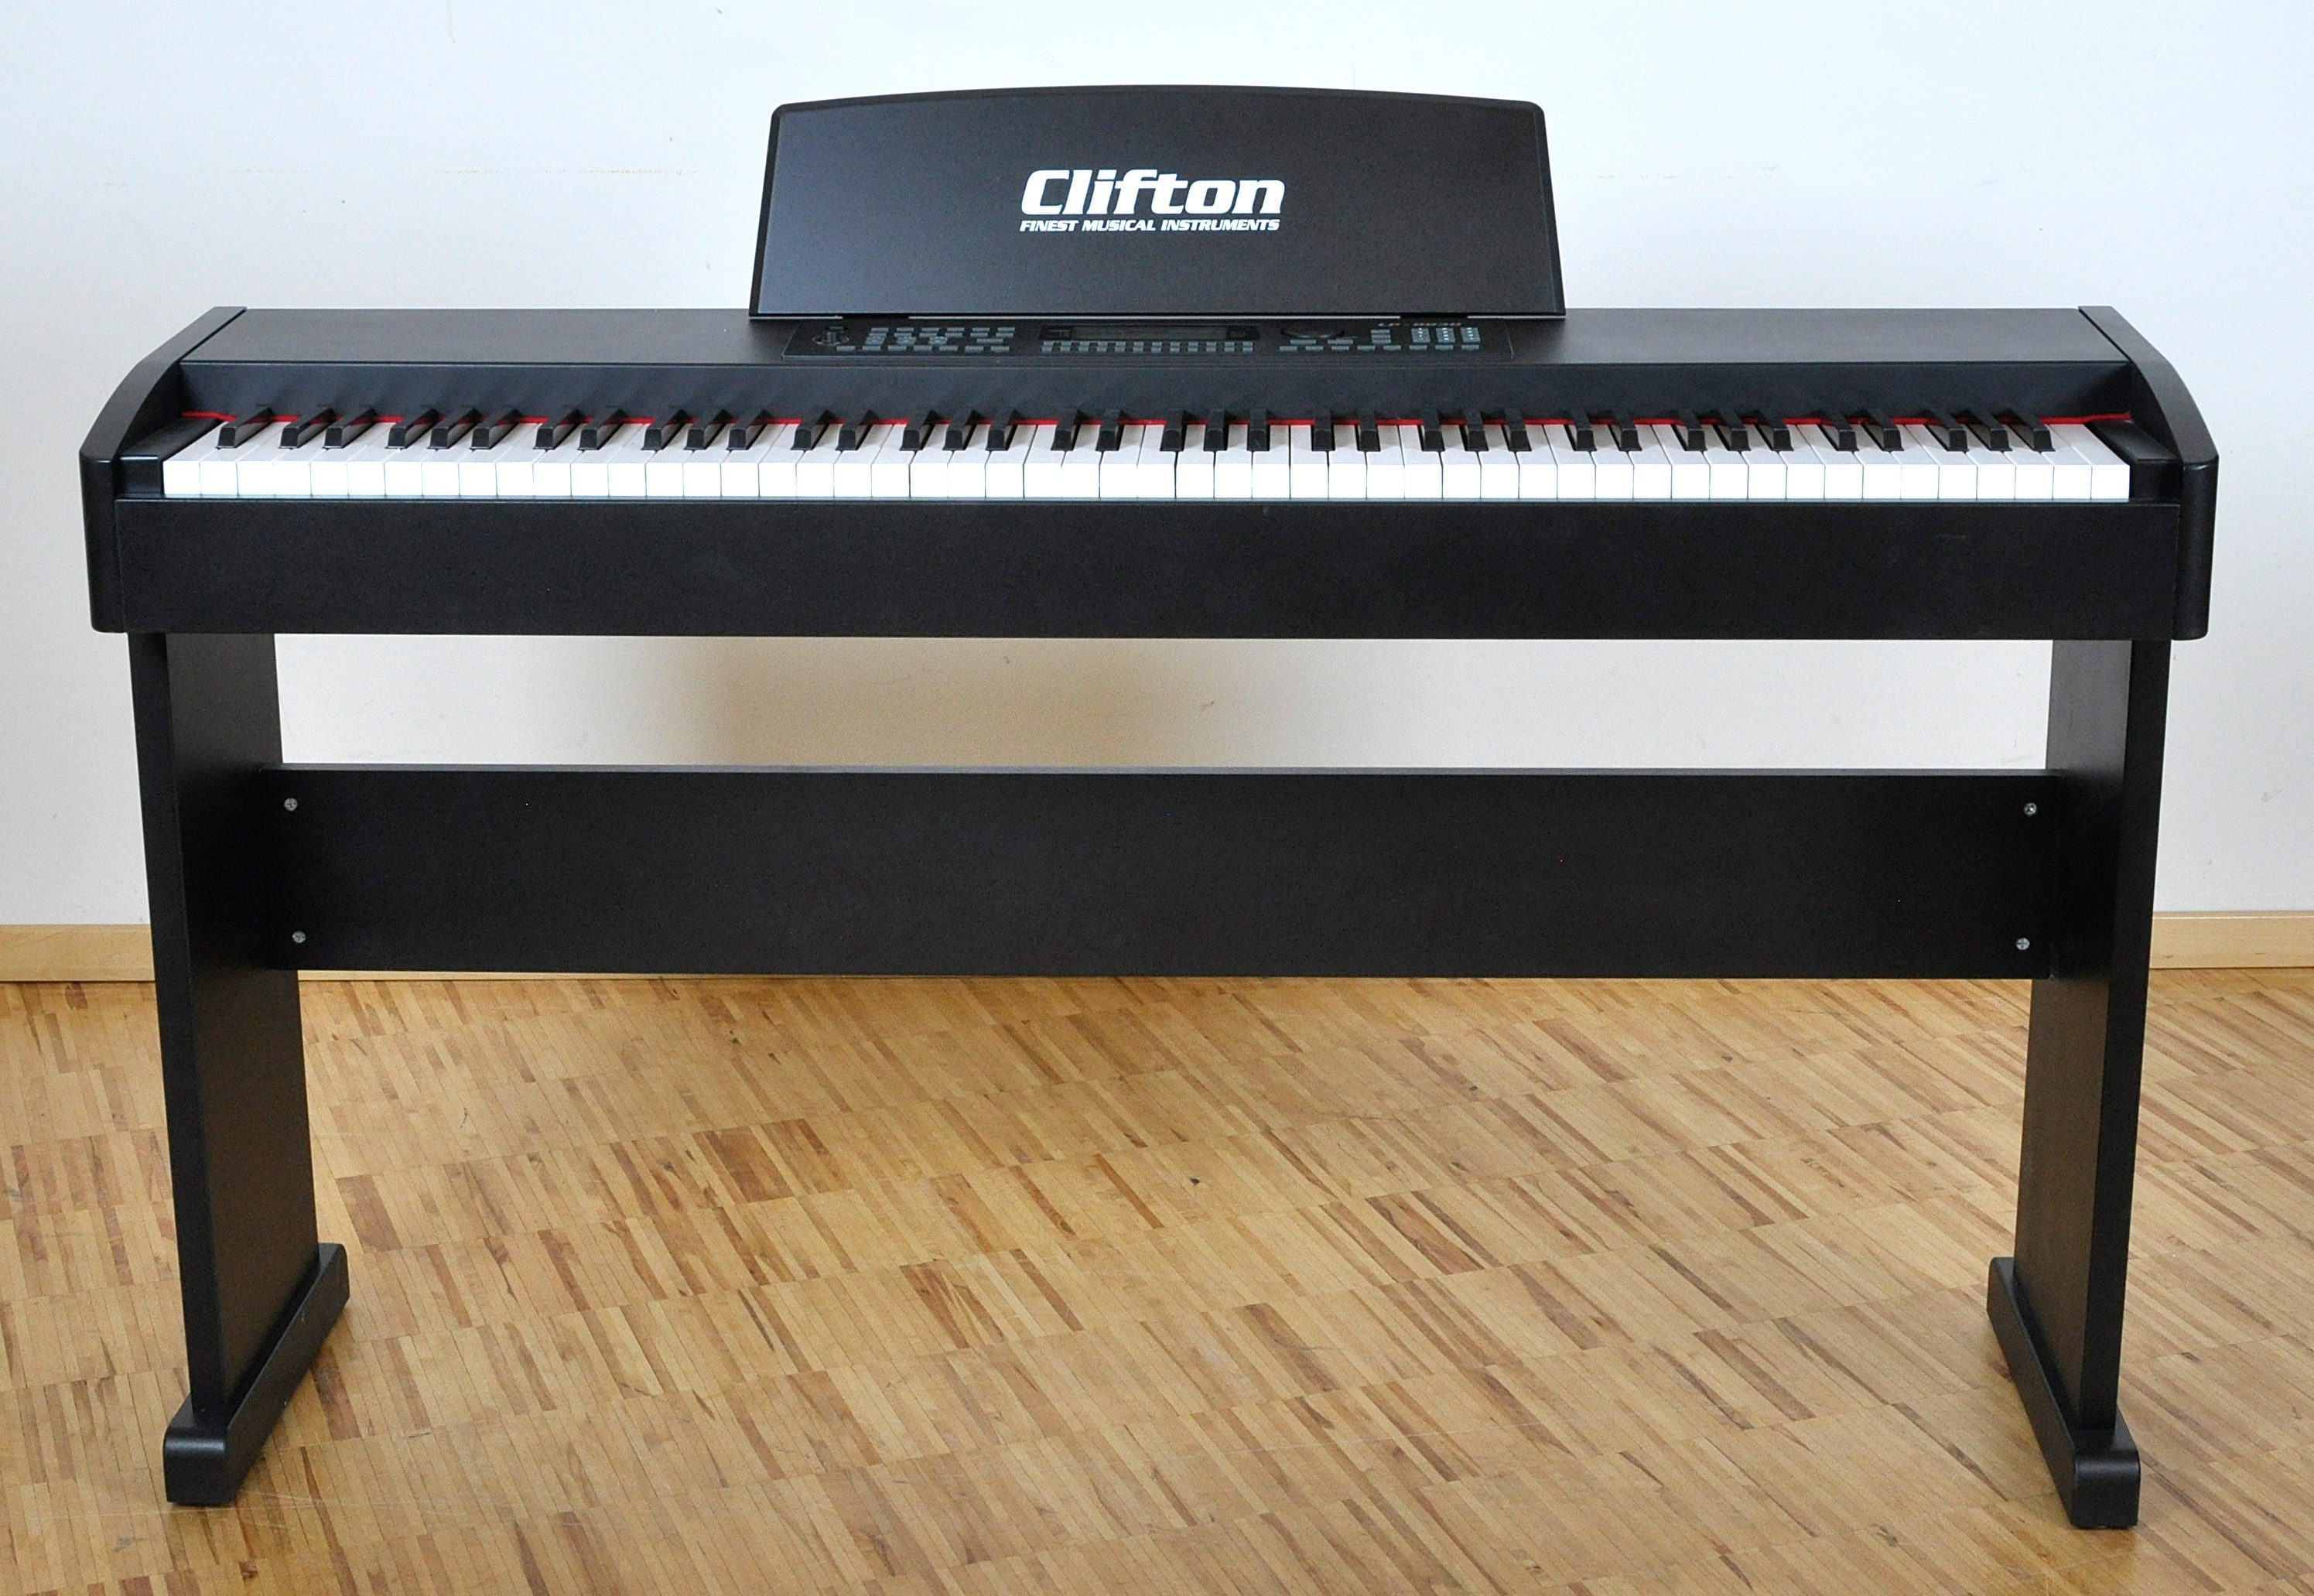 E-Piano mit 88 Tasten, »Clifton E-Piano«